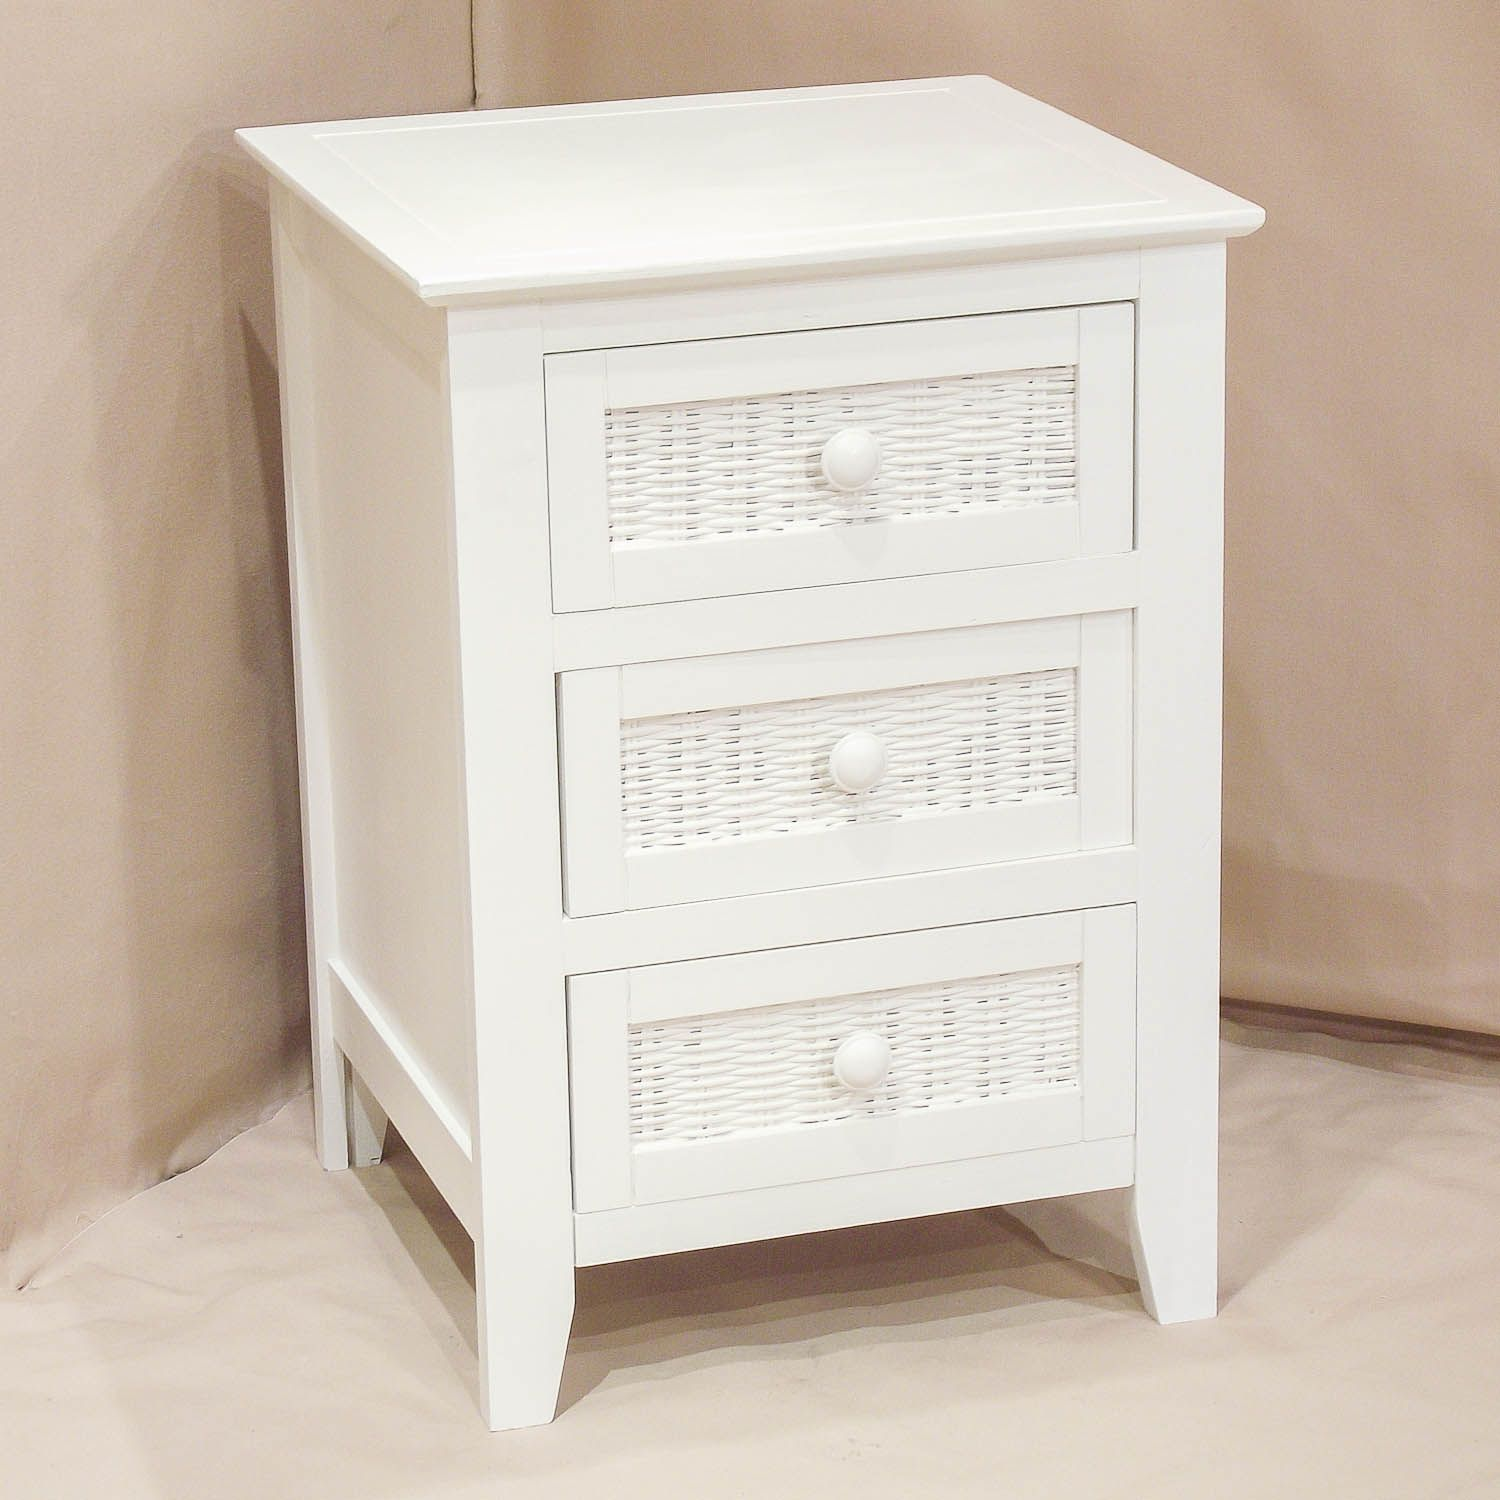 White side tables with drawers - Furniture Bedroom Vintage White Wooden Night Table With Decorative Woven Drawer Night Tables For Bedroom Laltraguida